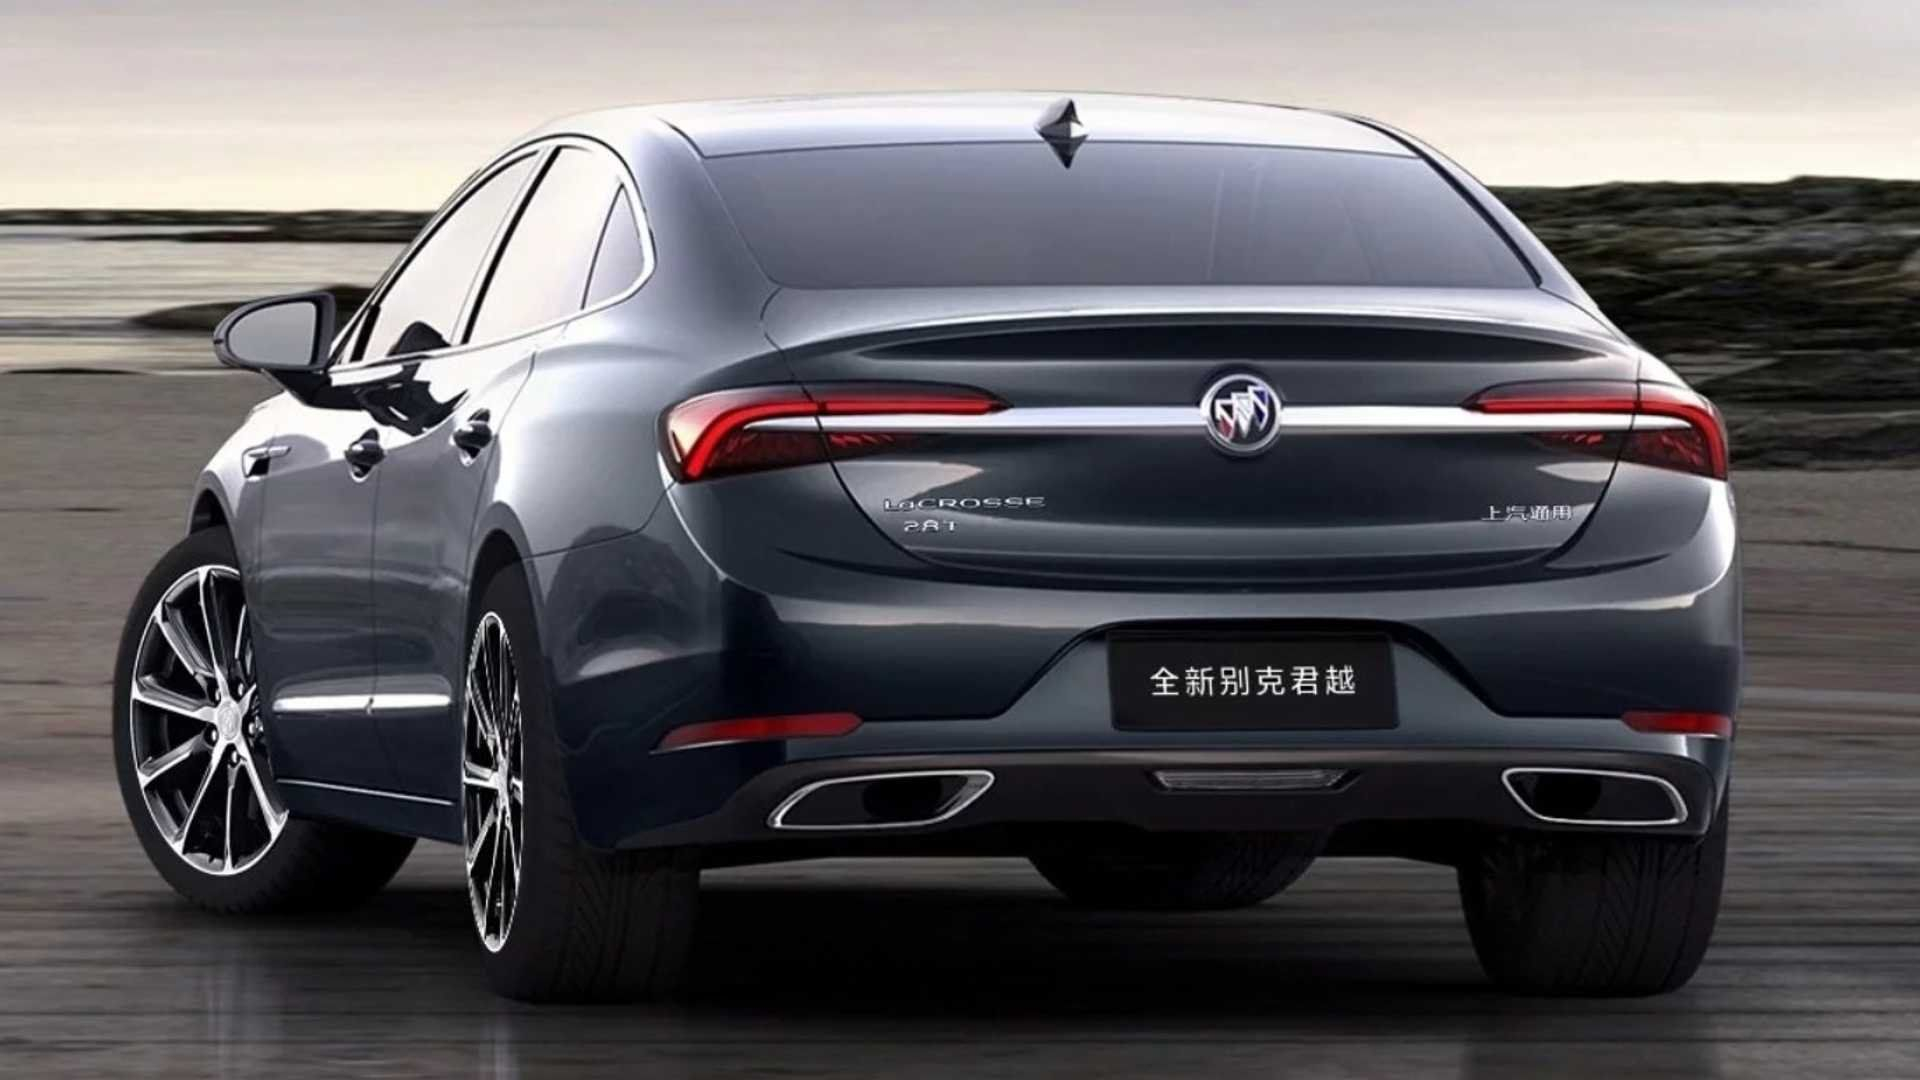 2021 Buick Lacrosse Release Date In 2020 | Buick Lacrosse Picture Of A New 2021 Buick Lacrosse